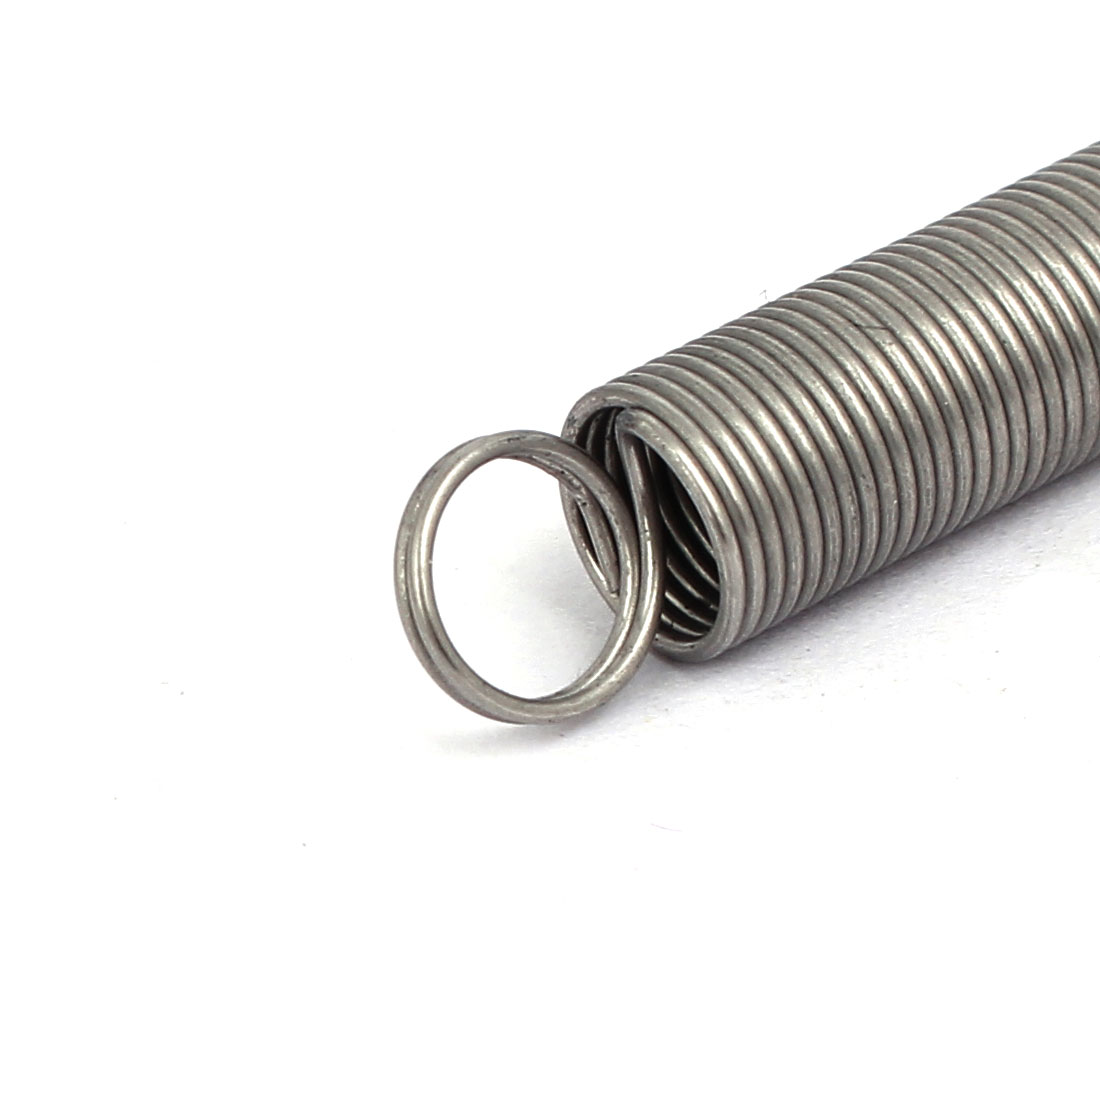 0.6mmx7mmx300mm 304 Stainless Steel Tension Springs Silver Tone 2pcs - image 2 of 3